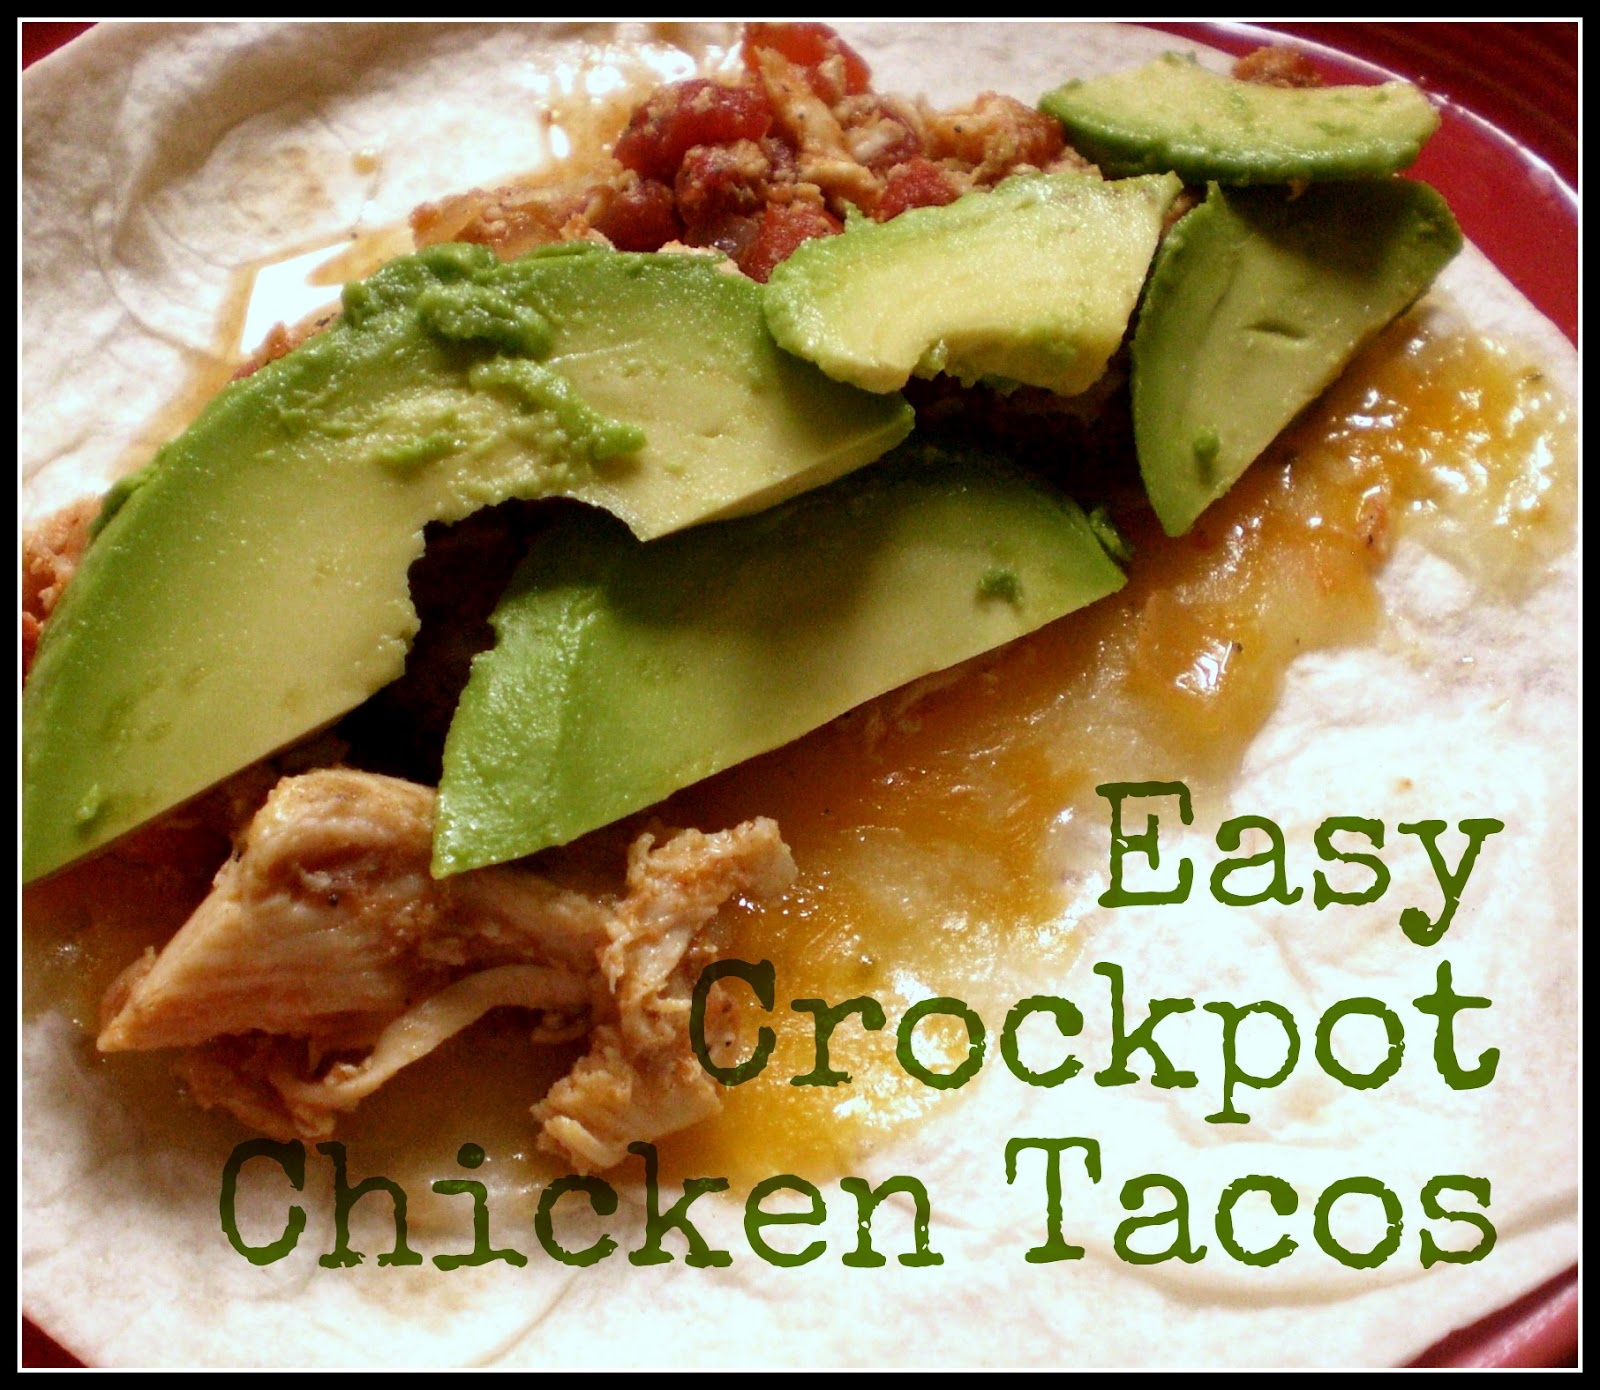 Mar 26,  · Crockpot Shredded Chicken – a super easy Crockpot recipe for all purpose shredded chicken! This chicken is seasoned and slow cooked all day, then ready to use in any of your favorite wraps, tacos, or casseroles/5(21).